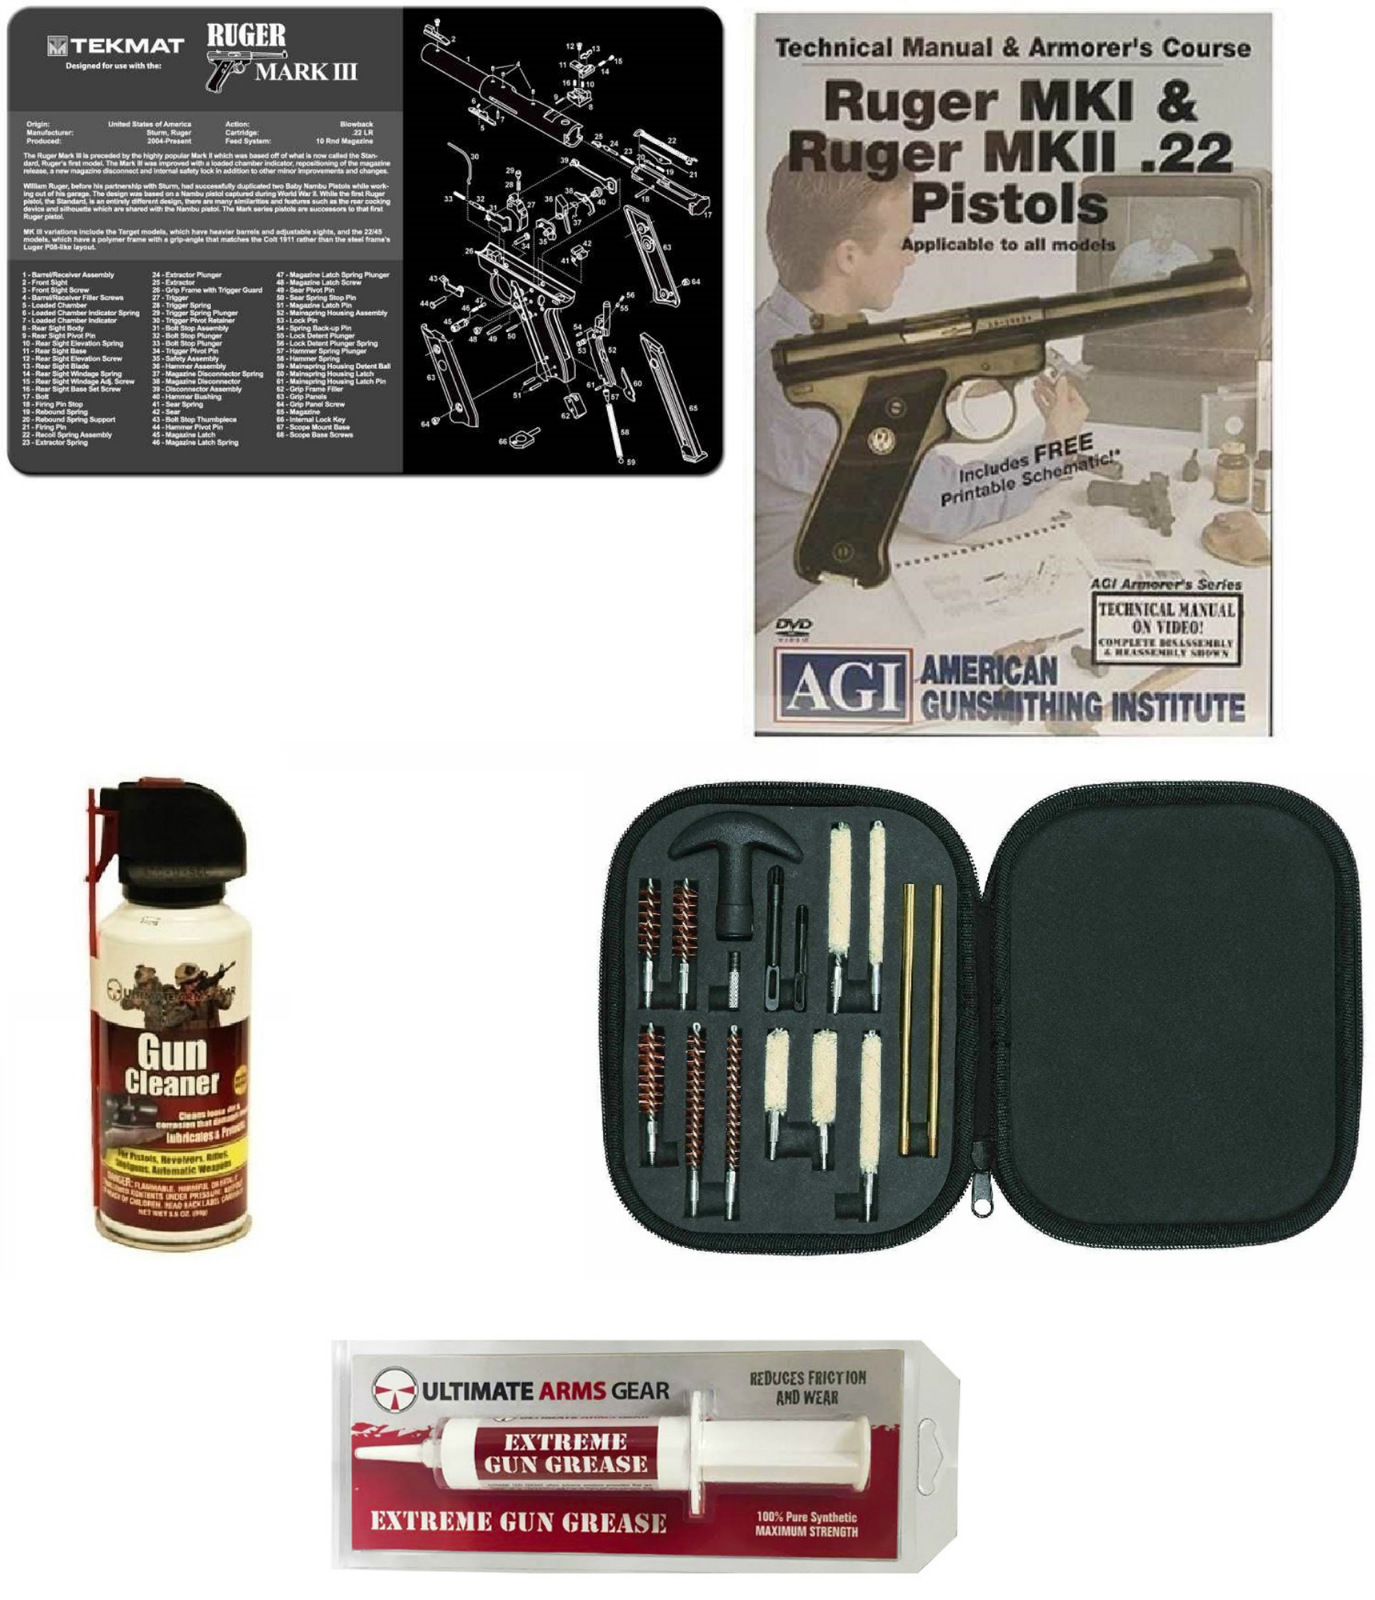 Ultimate Arms Gear Gunsmith Cleaning Gun Mat Ruger MK III Mark III 3 + Professional Cleaning Supplies Kit 17 pc Cleaning... by